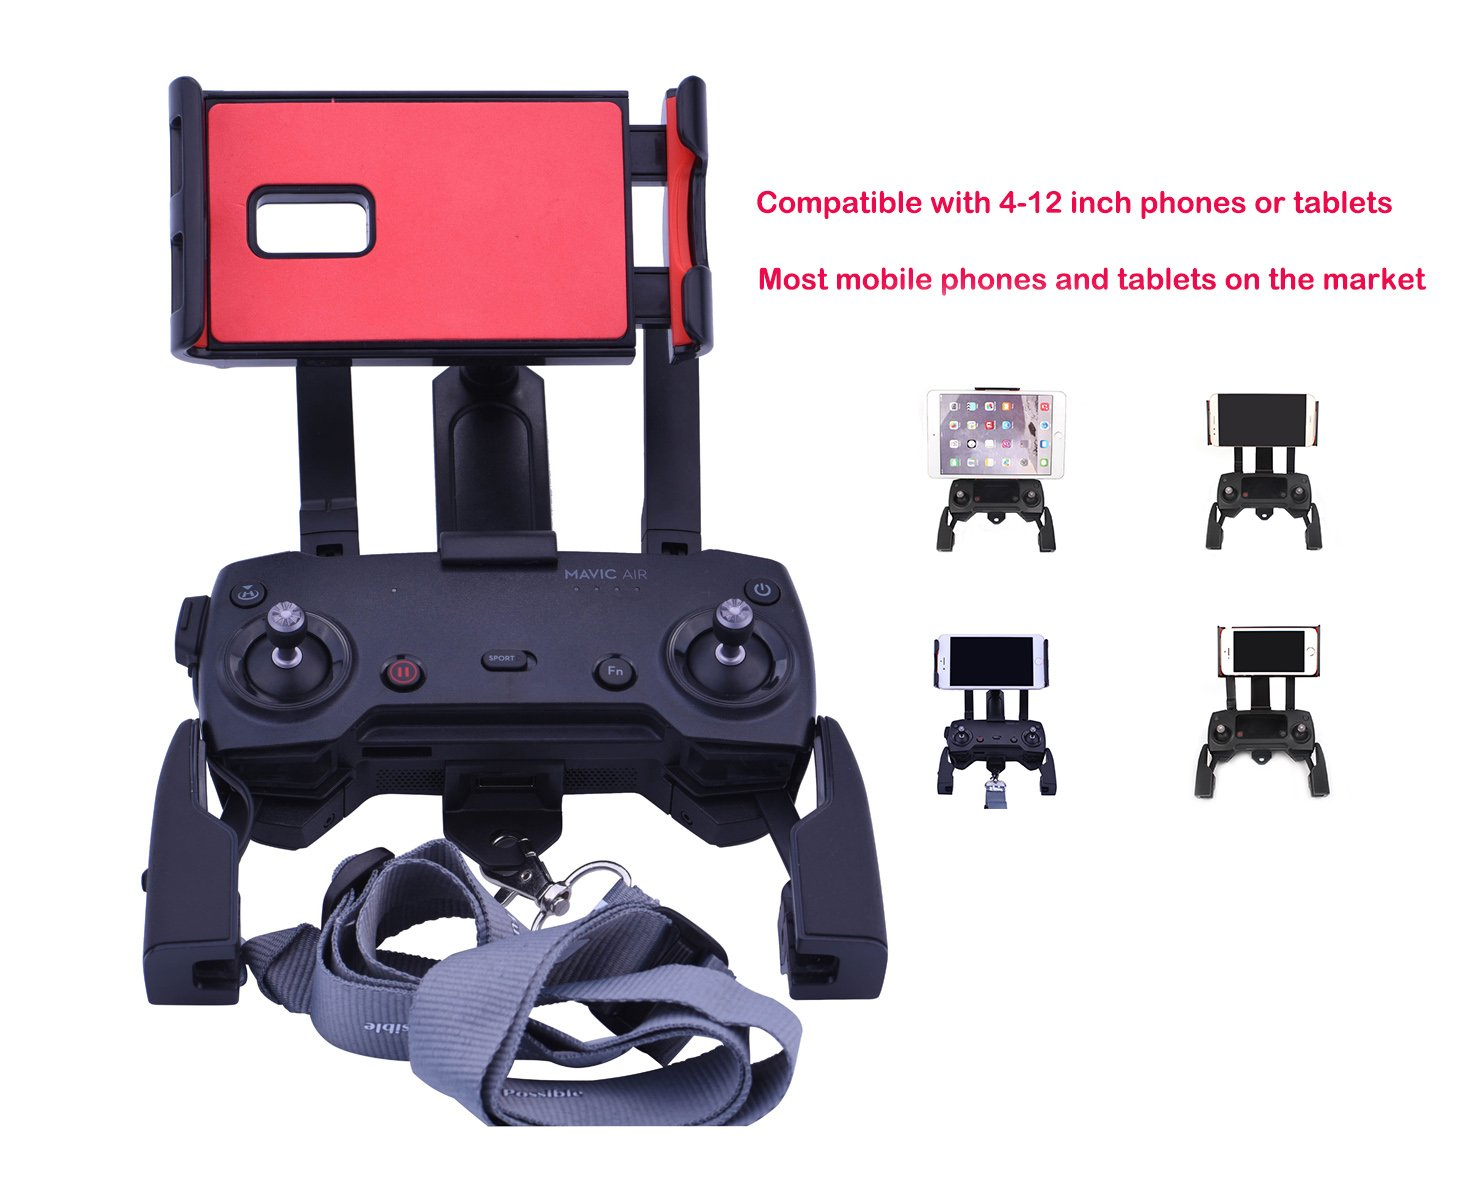 4-12 Inch Phone Tablet Extended Mount Holder With Neck Strap Foldable Bracket for DJI Mavic Air Pro Spark DJI Mavic Air Pro Spark Accessories Qubuy Adjustable Remote Controller Mount Holder